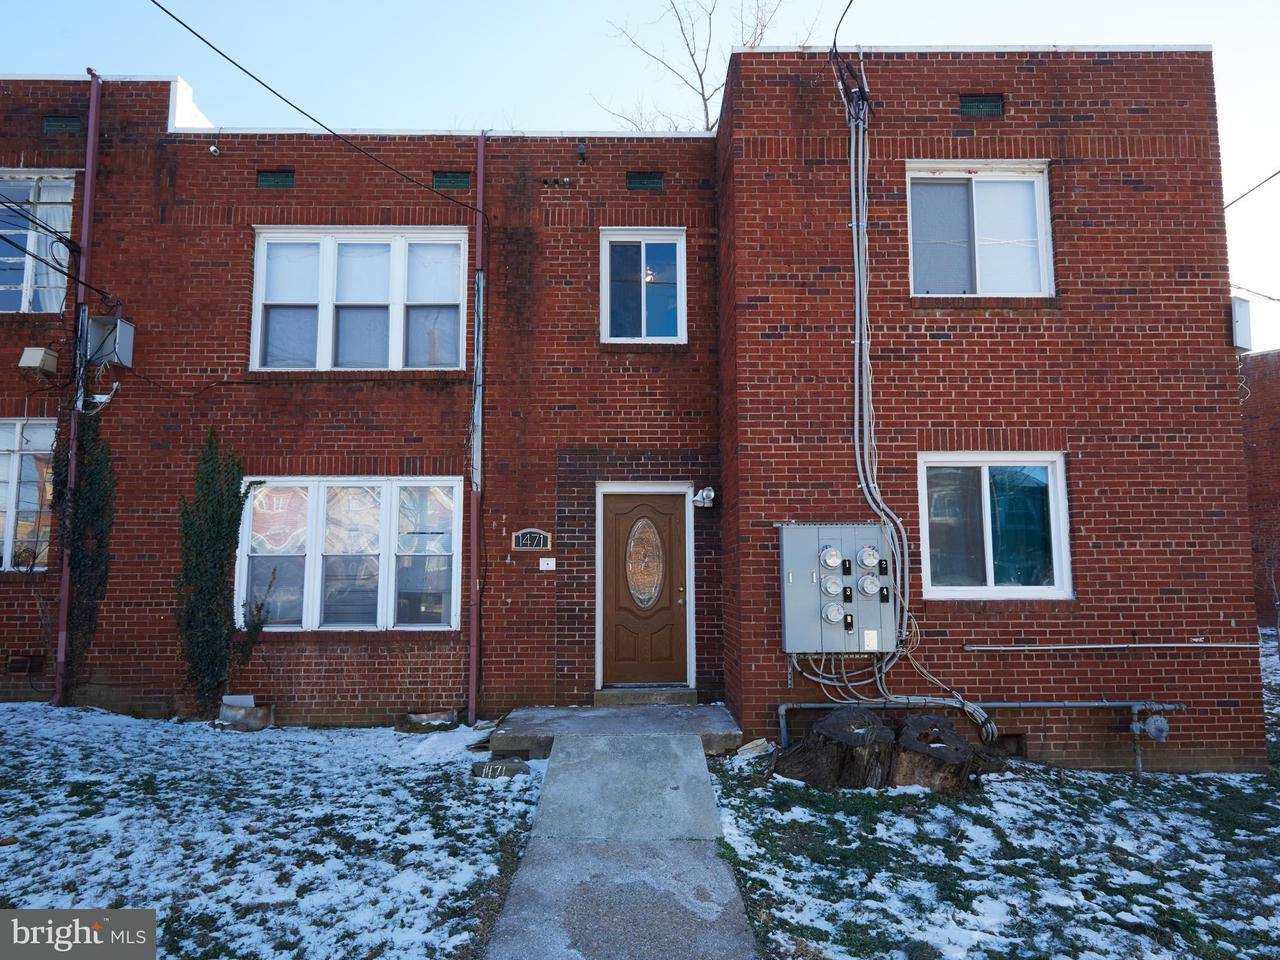 Multi-Family Home for Sale at 1471 Bangor St Se 1471 Bangor St Se Washington, District Of Columbia 20020 United States